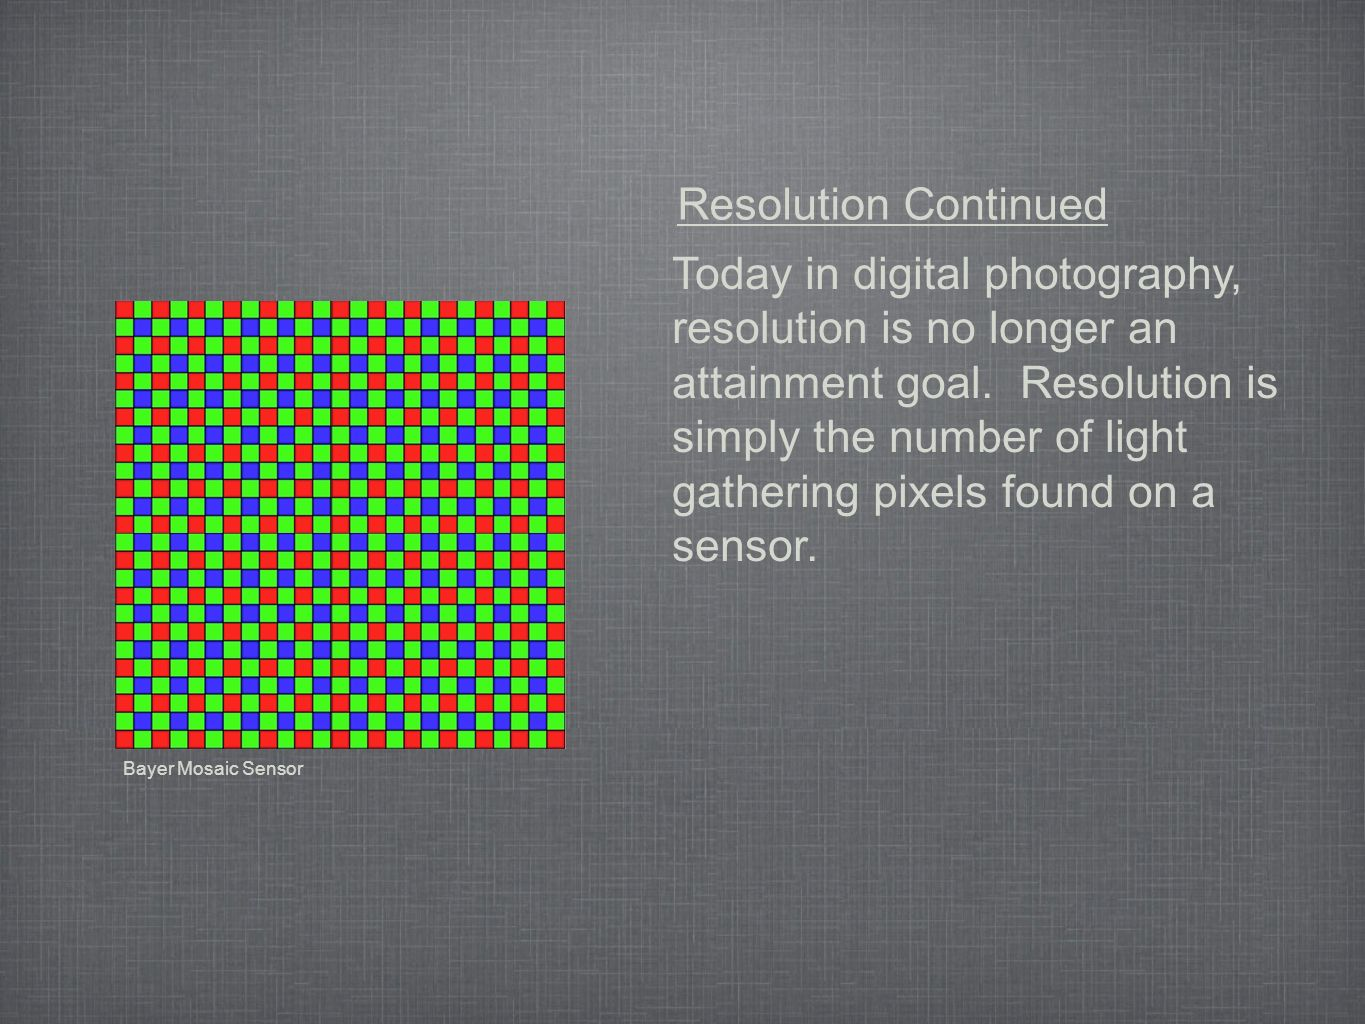 Today in digital photography, resolution is no longer an attainment goal.